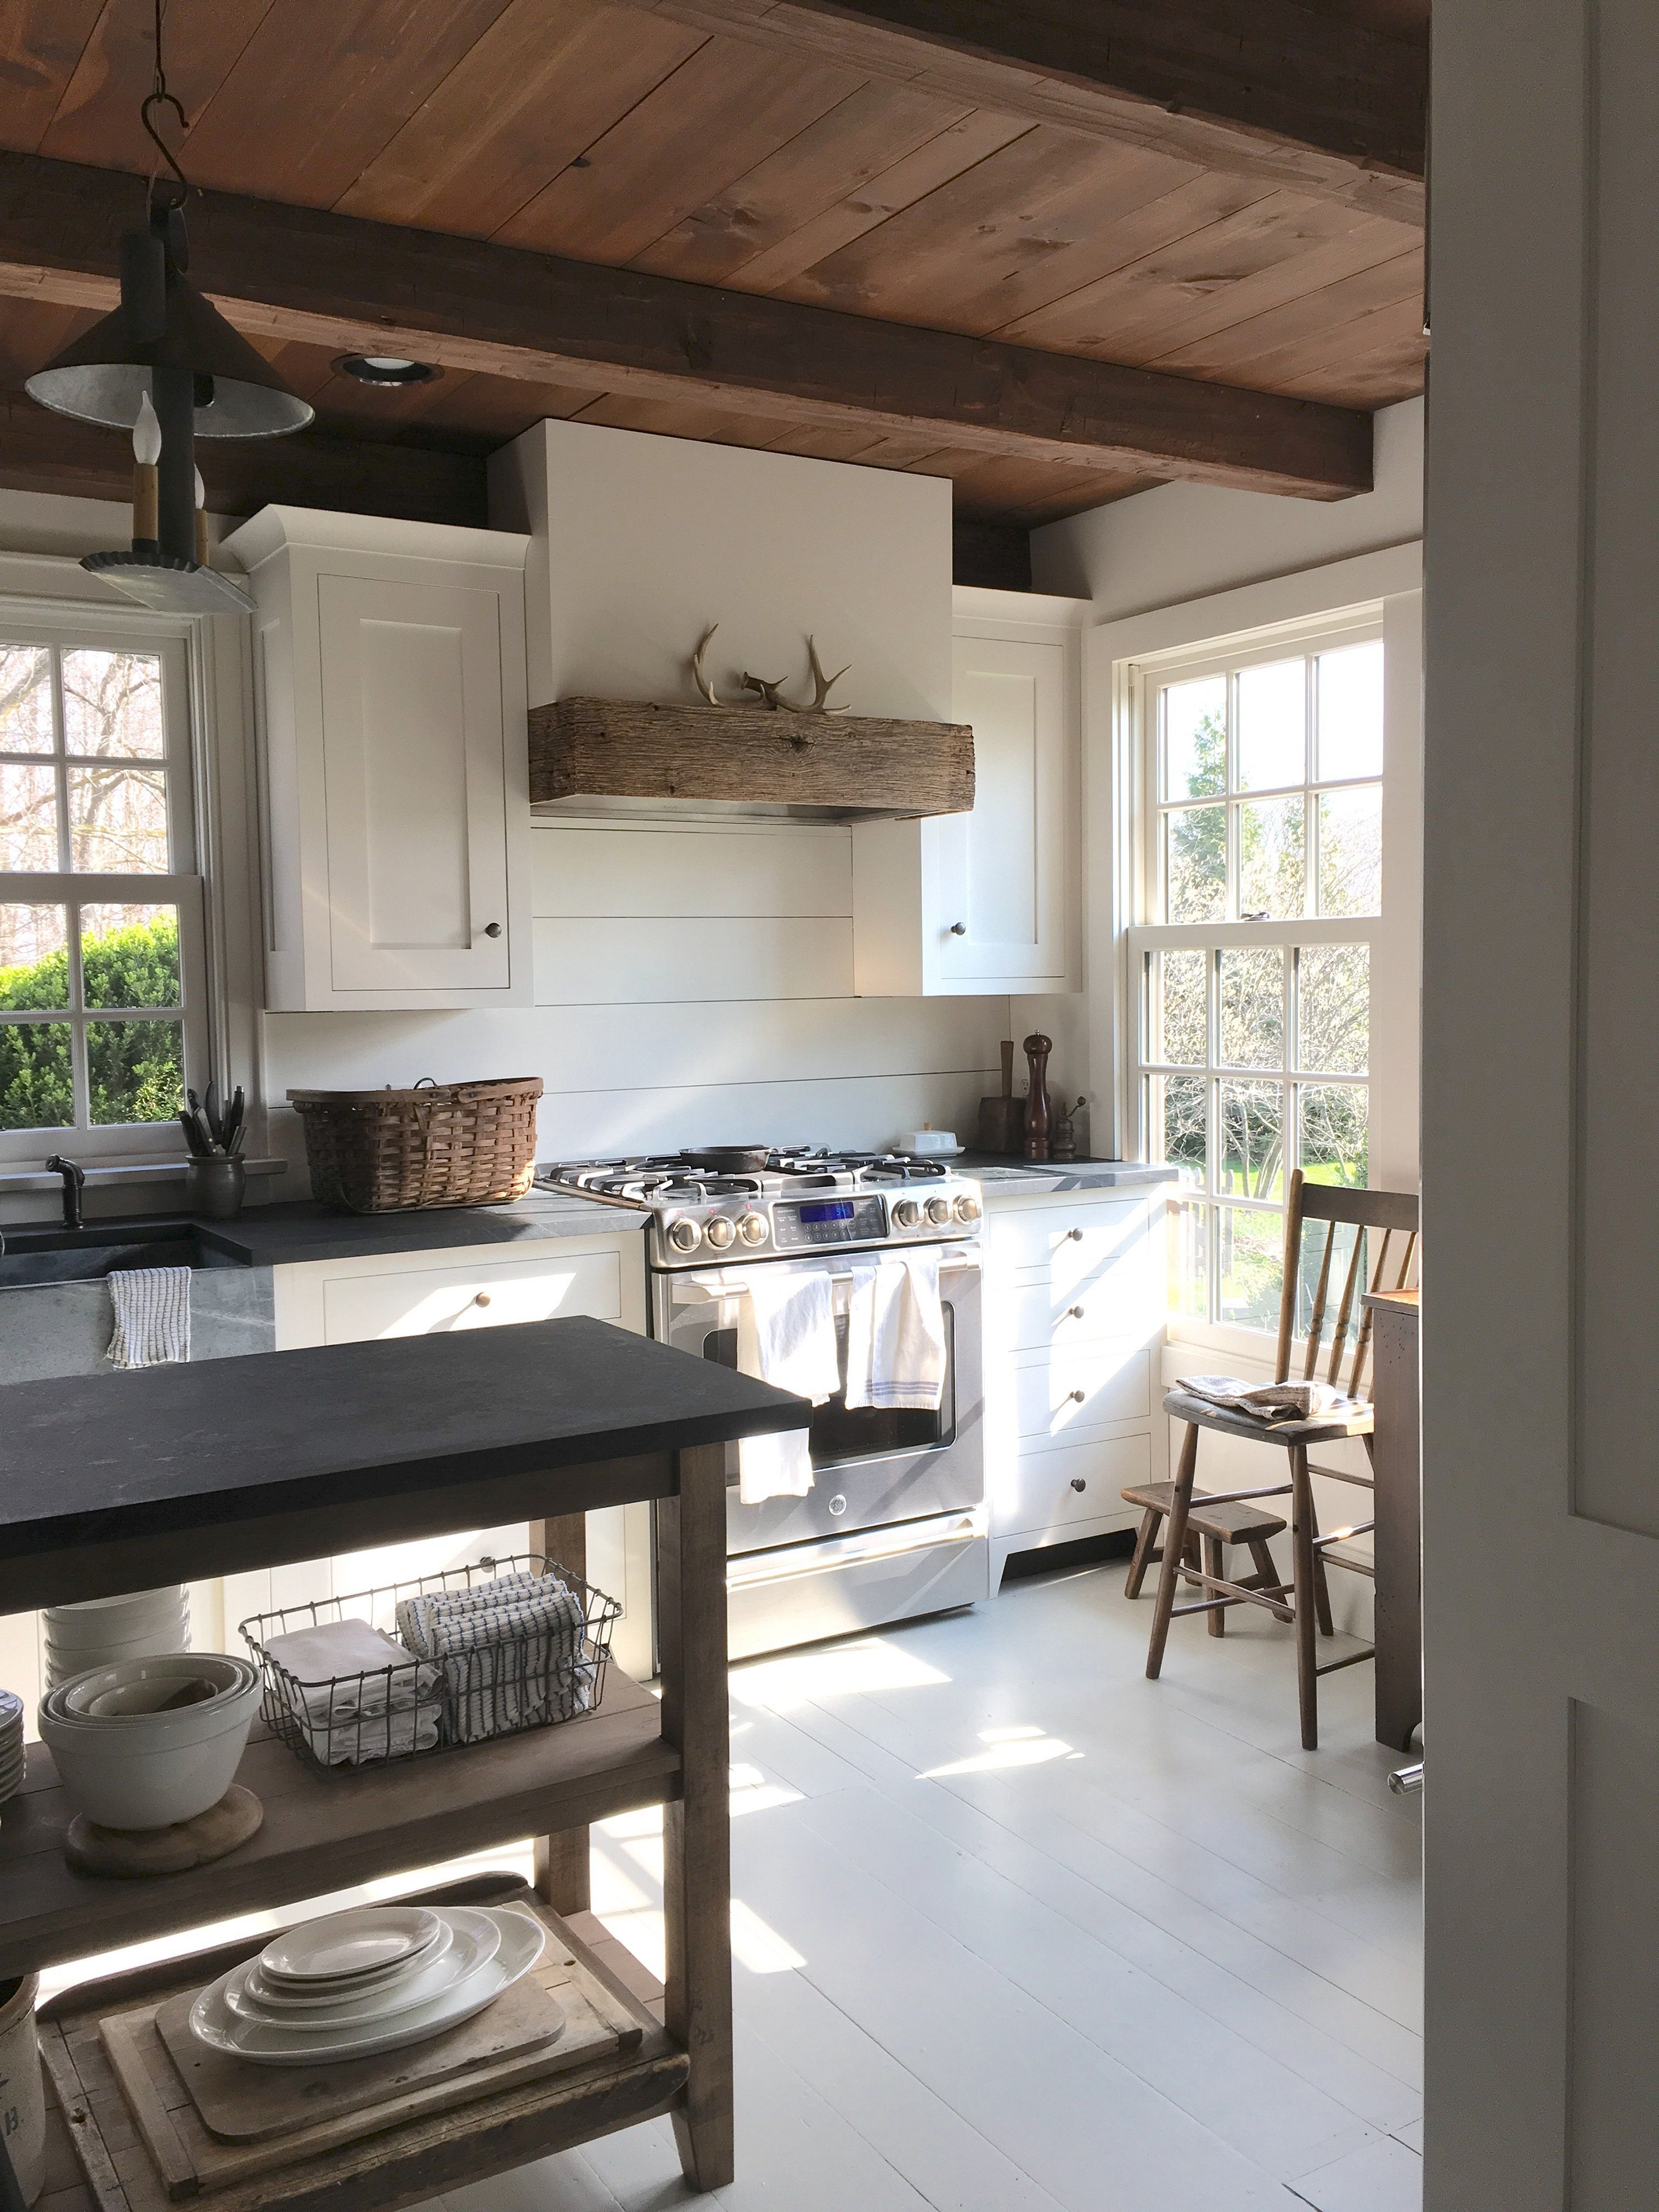 rustic wooden ceiling design ideas for your house decomg also amazingly austere american farmhouse by phoebe troyer no rh pinterest